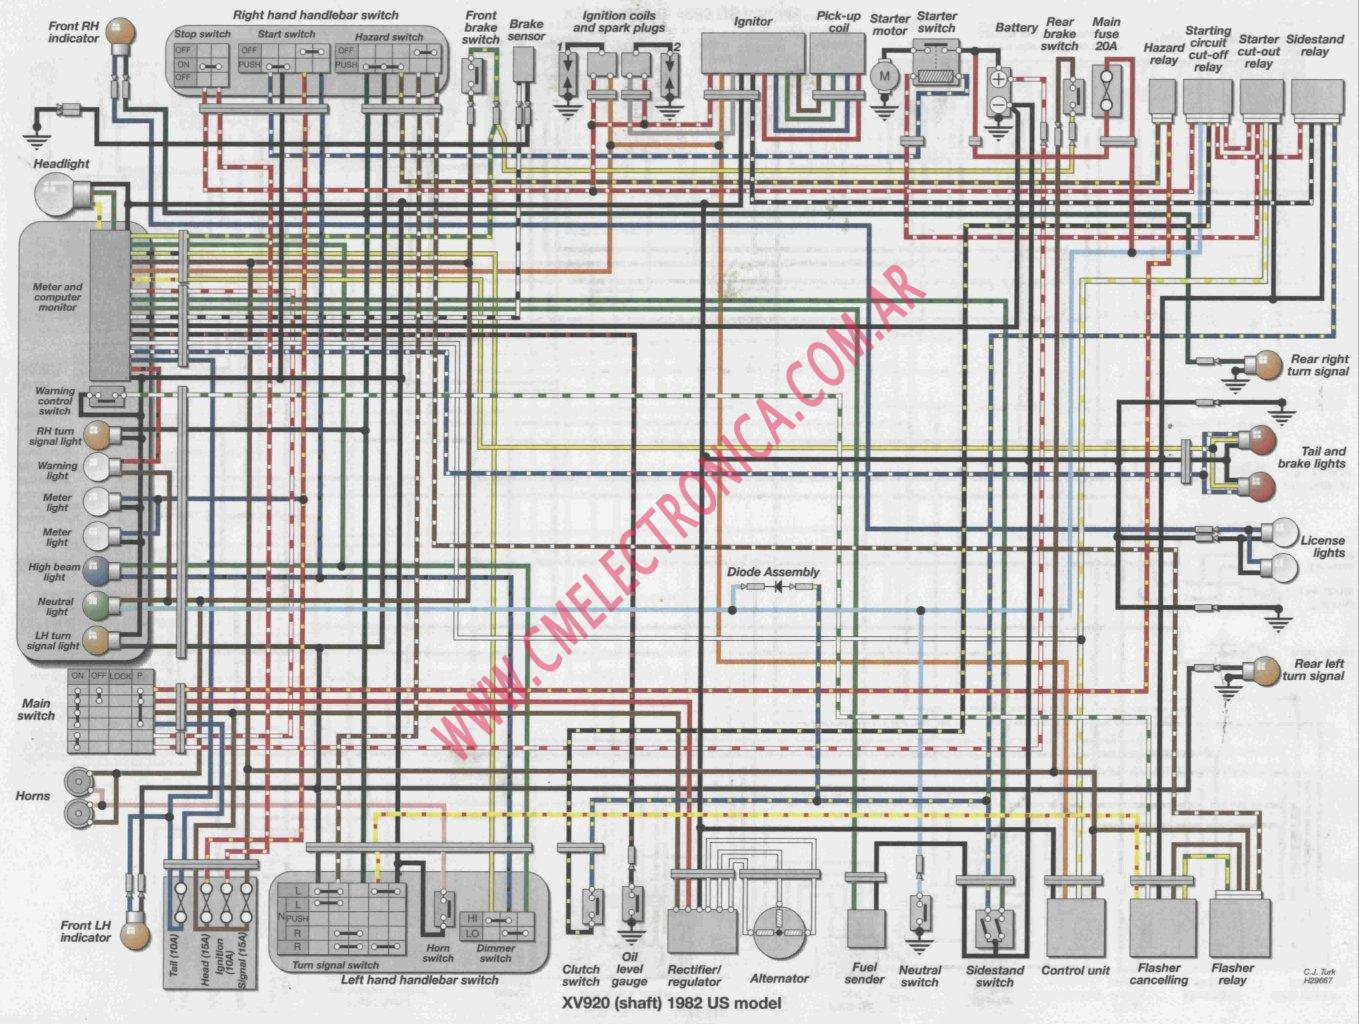 yamaha xv920 yamaha virago 535 wiring diagram efcaviation com Yamaha Virago 1000Cc Wiring-Diagram at mifinder.co